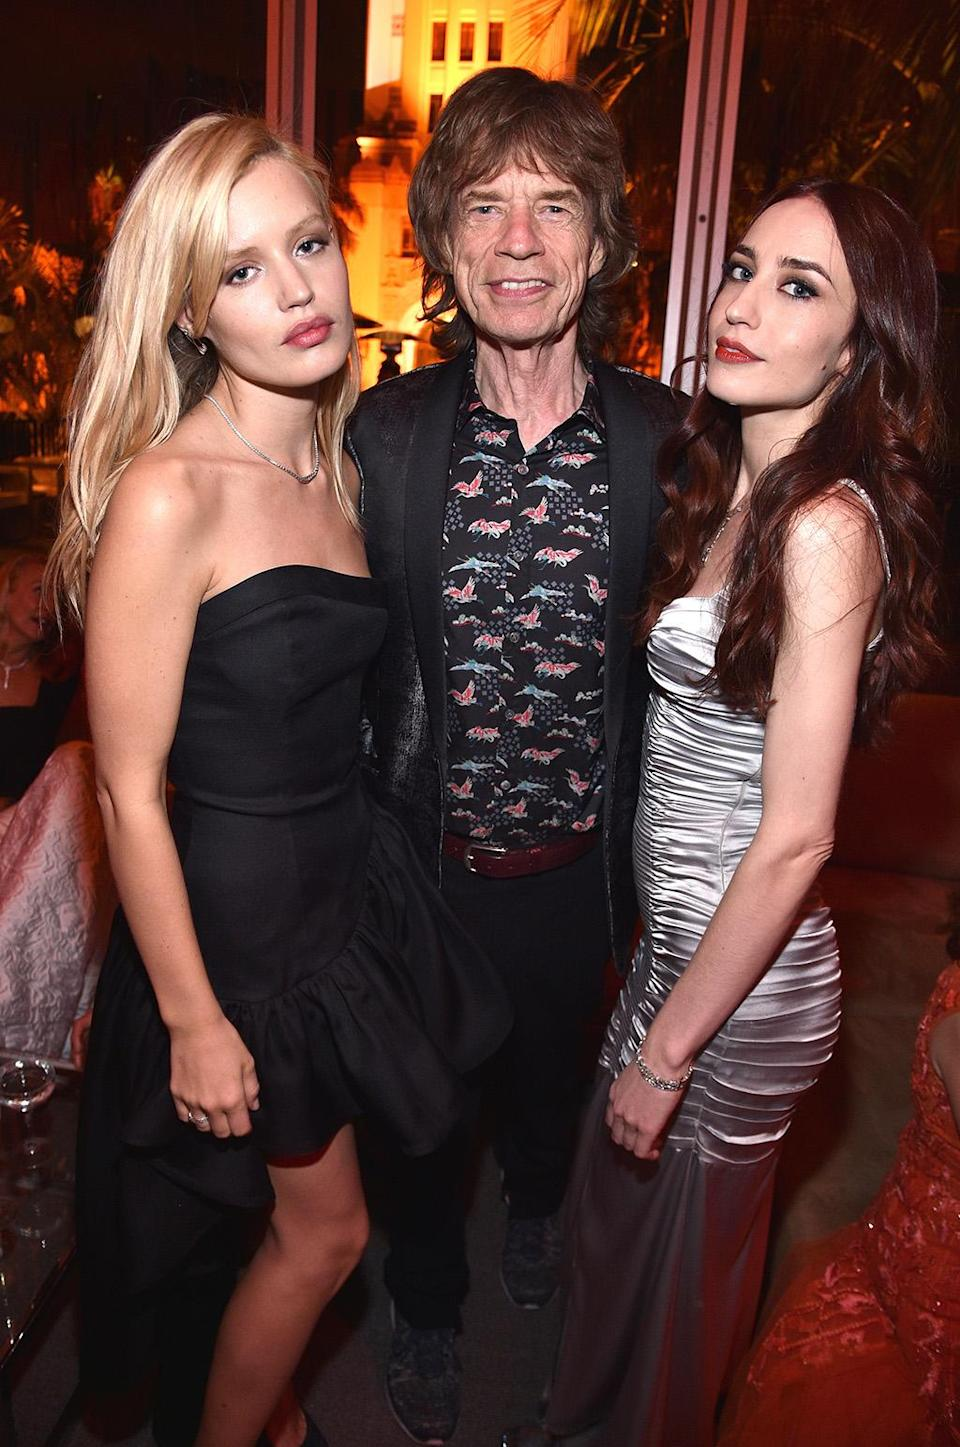 <p>Mick Jagger with daughters Georgia May Jagger and Elizabeth Jagger attend the 2017 Vanity Fair Oscar Party hosted by Graydon Carter at Wallis Annenberg Center for the Performing Arts on February 26, 2017 in Beverly Hills, California. (Photo by Kevin Mazur/VF17/WireImage) </p>